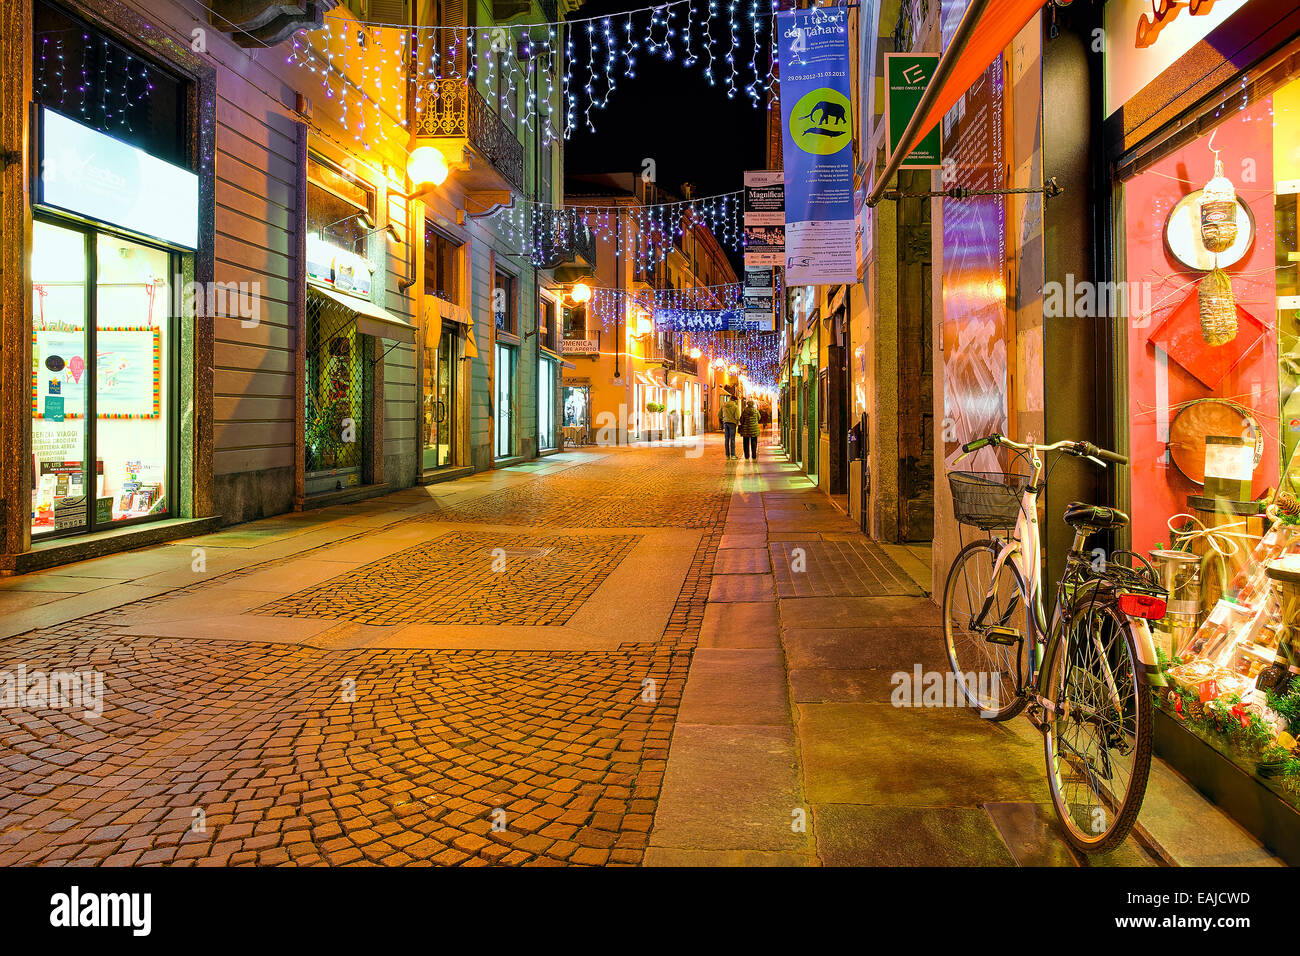 Pedestrian street in old town of Alba in evening. - Stock Image